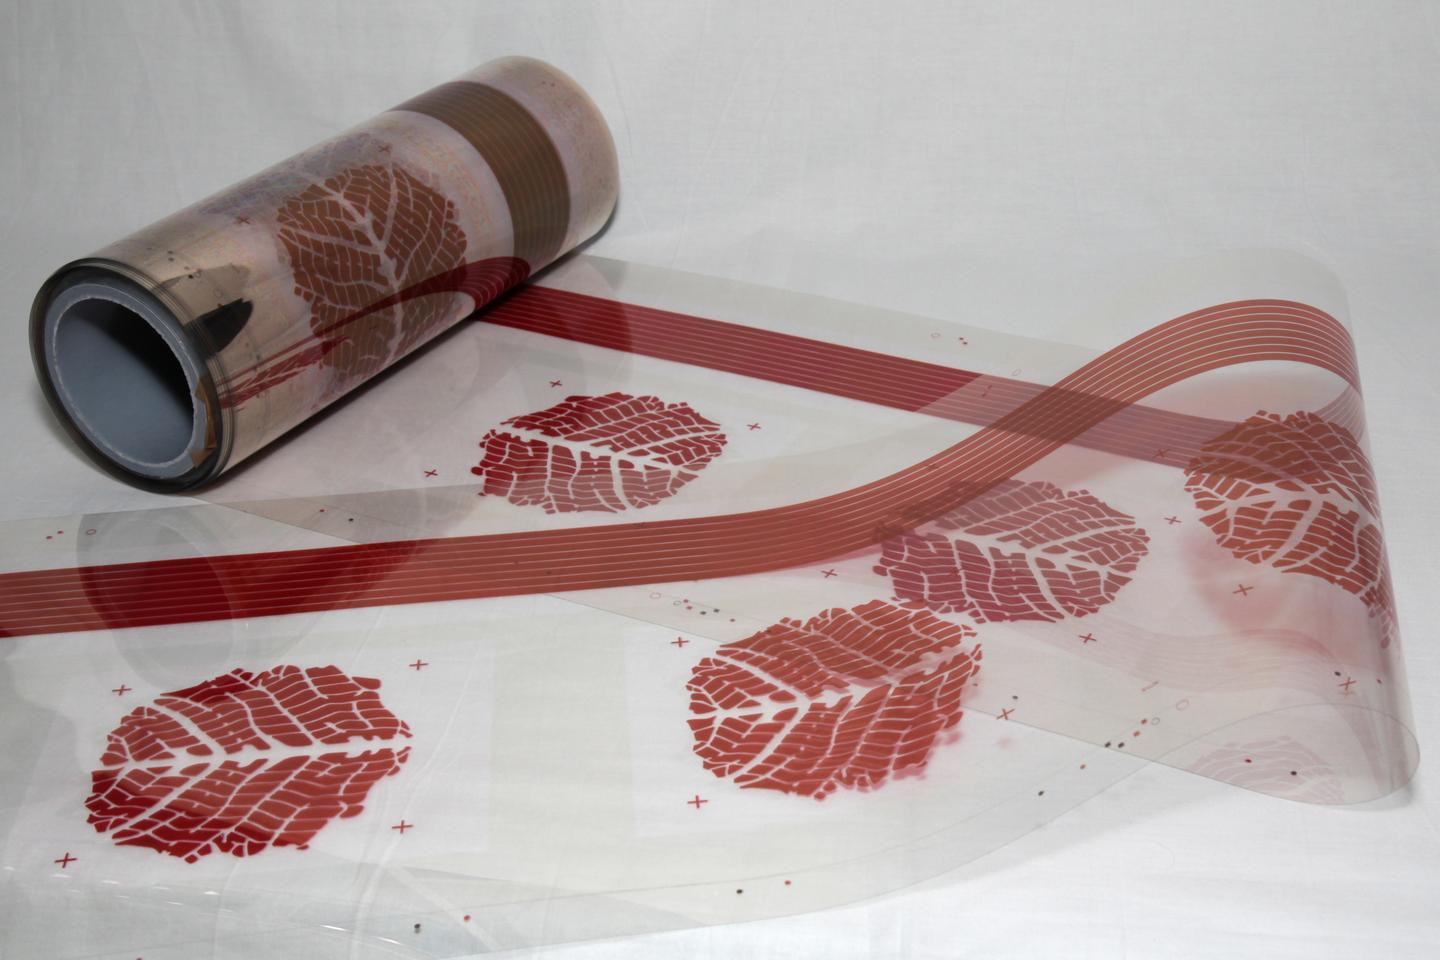 Decorative graphic elements can be printed as part of the manufacturing process (Photo: Antti Veijola)